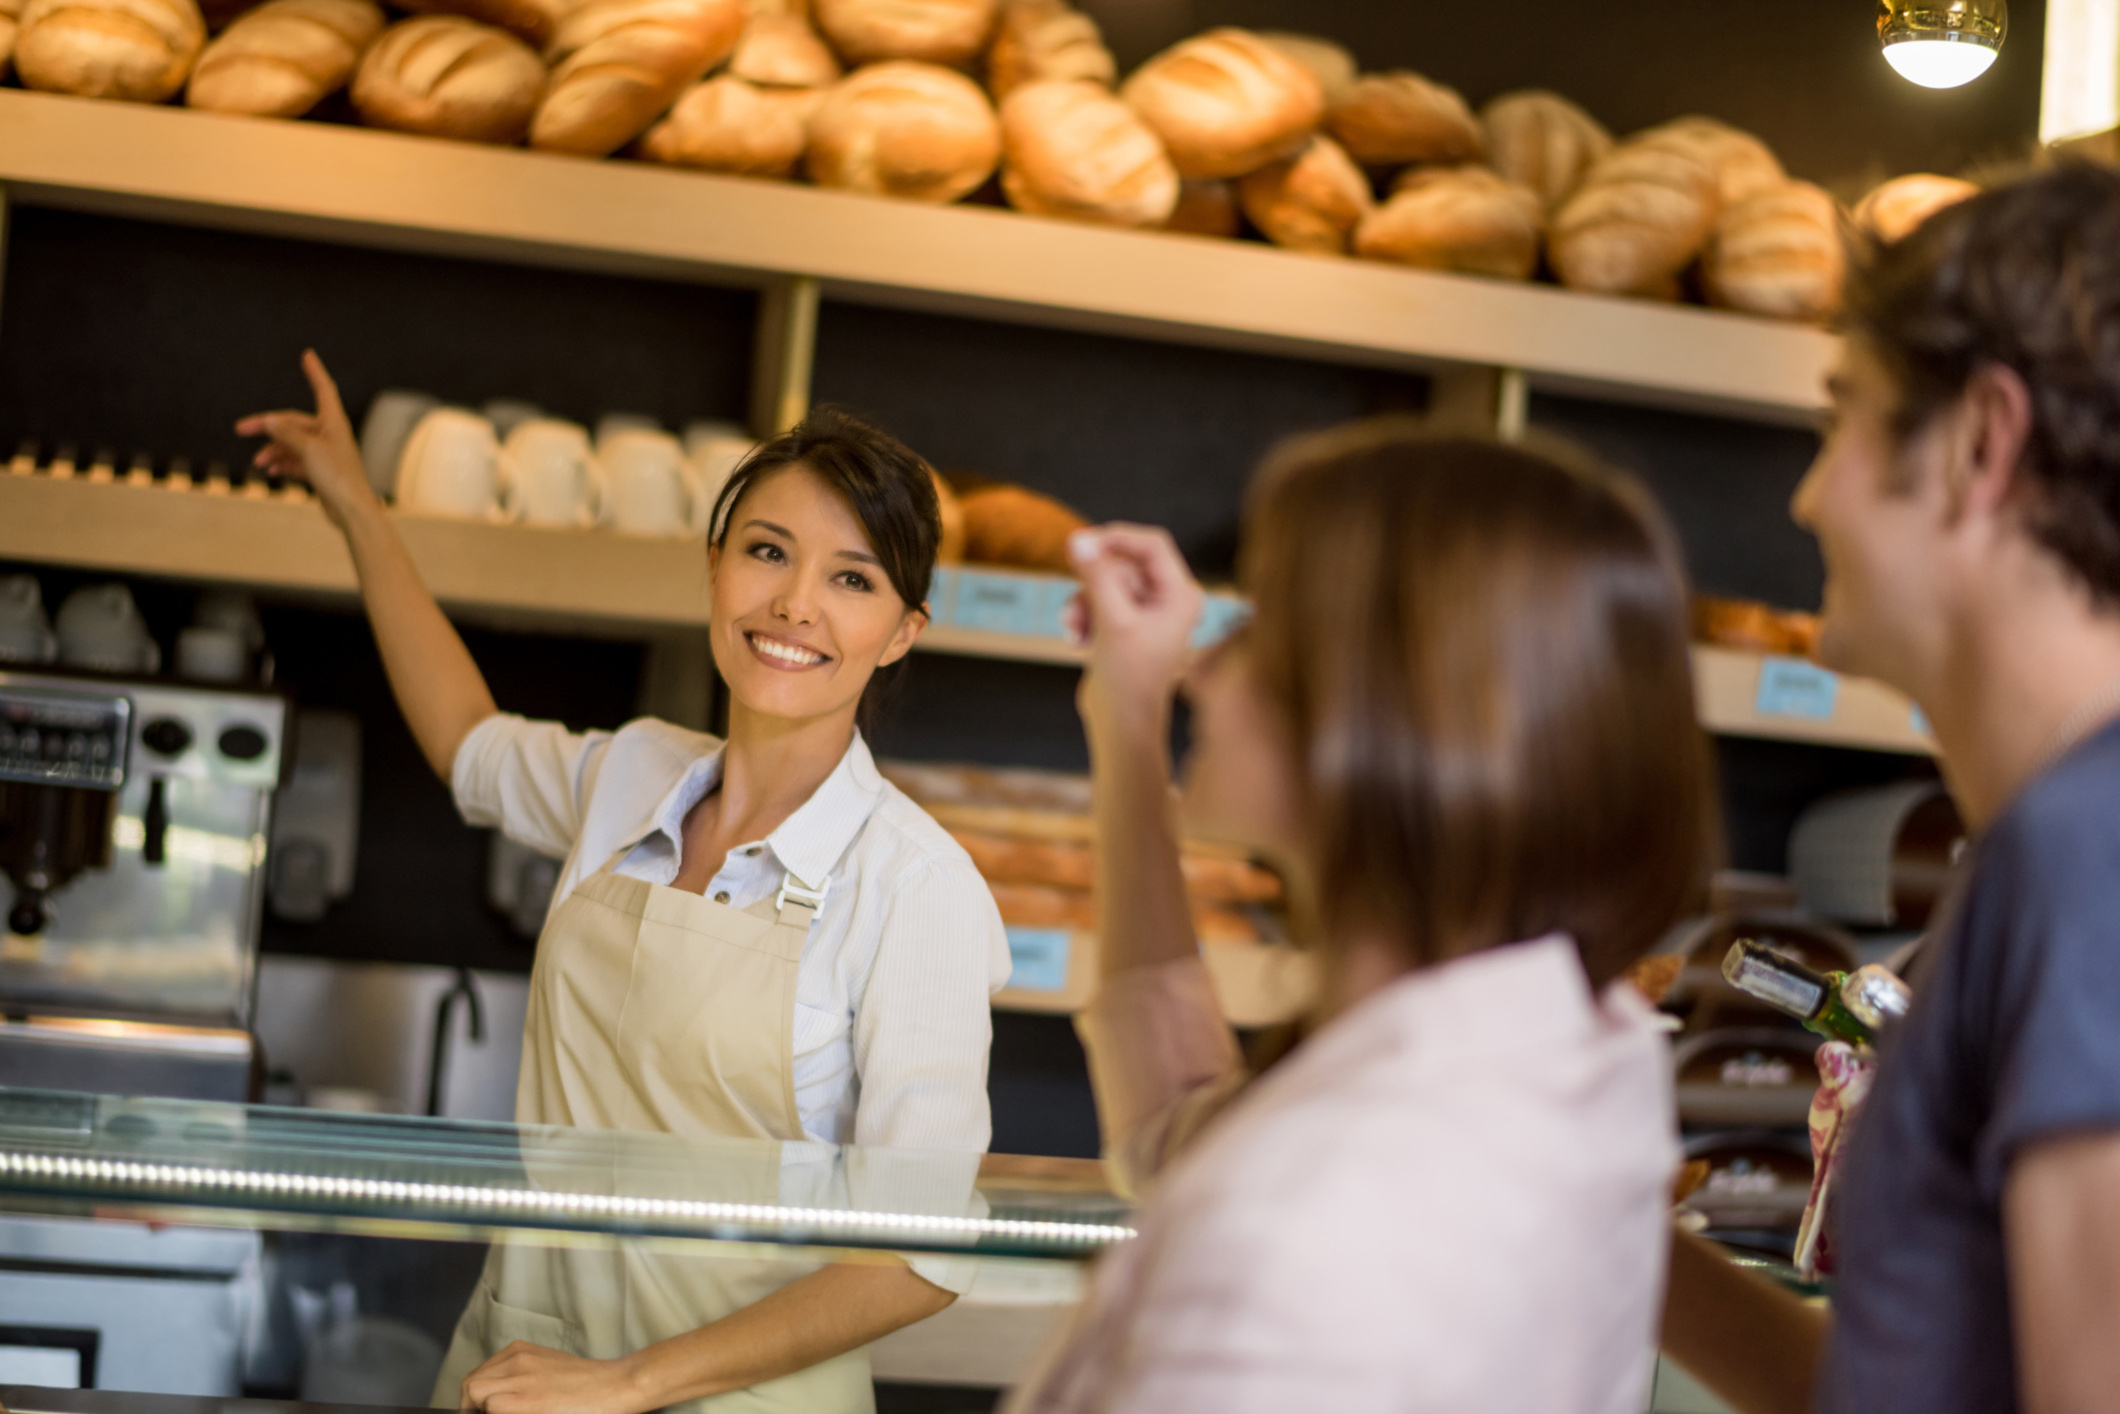 employee smiling at customers